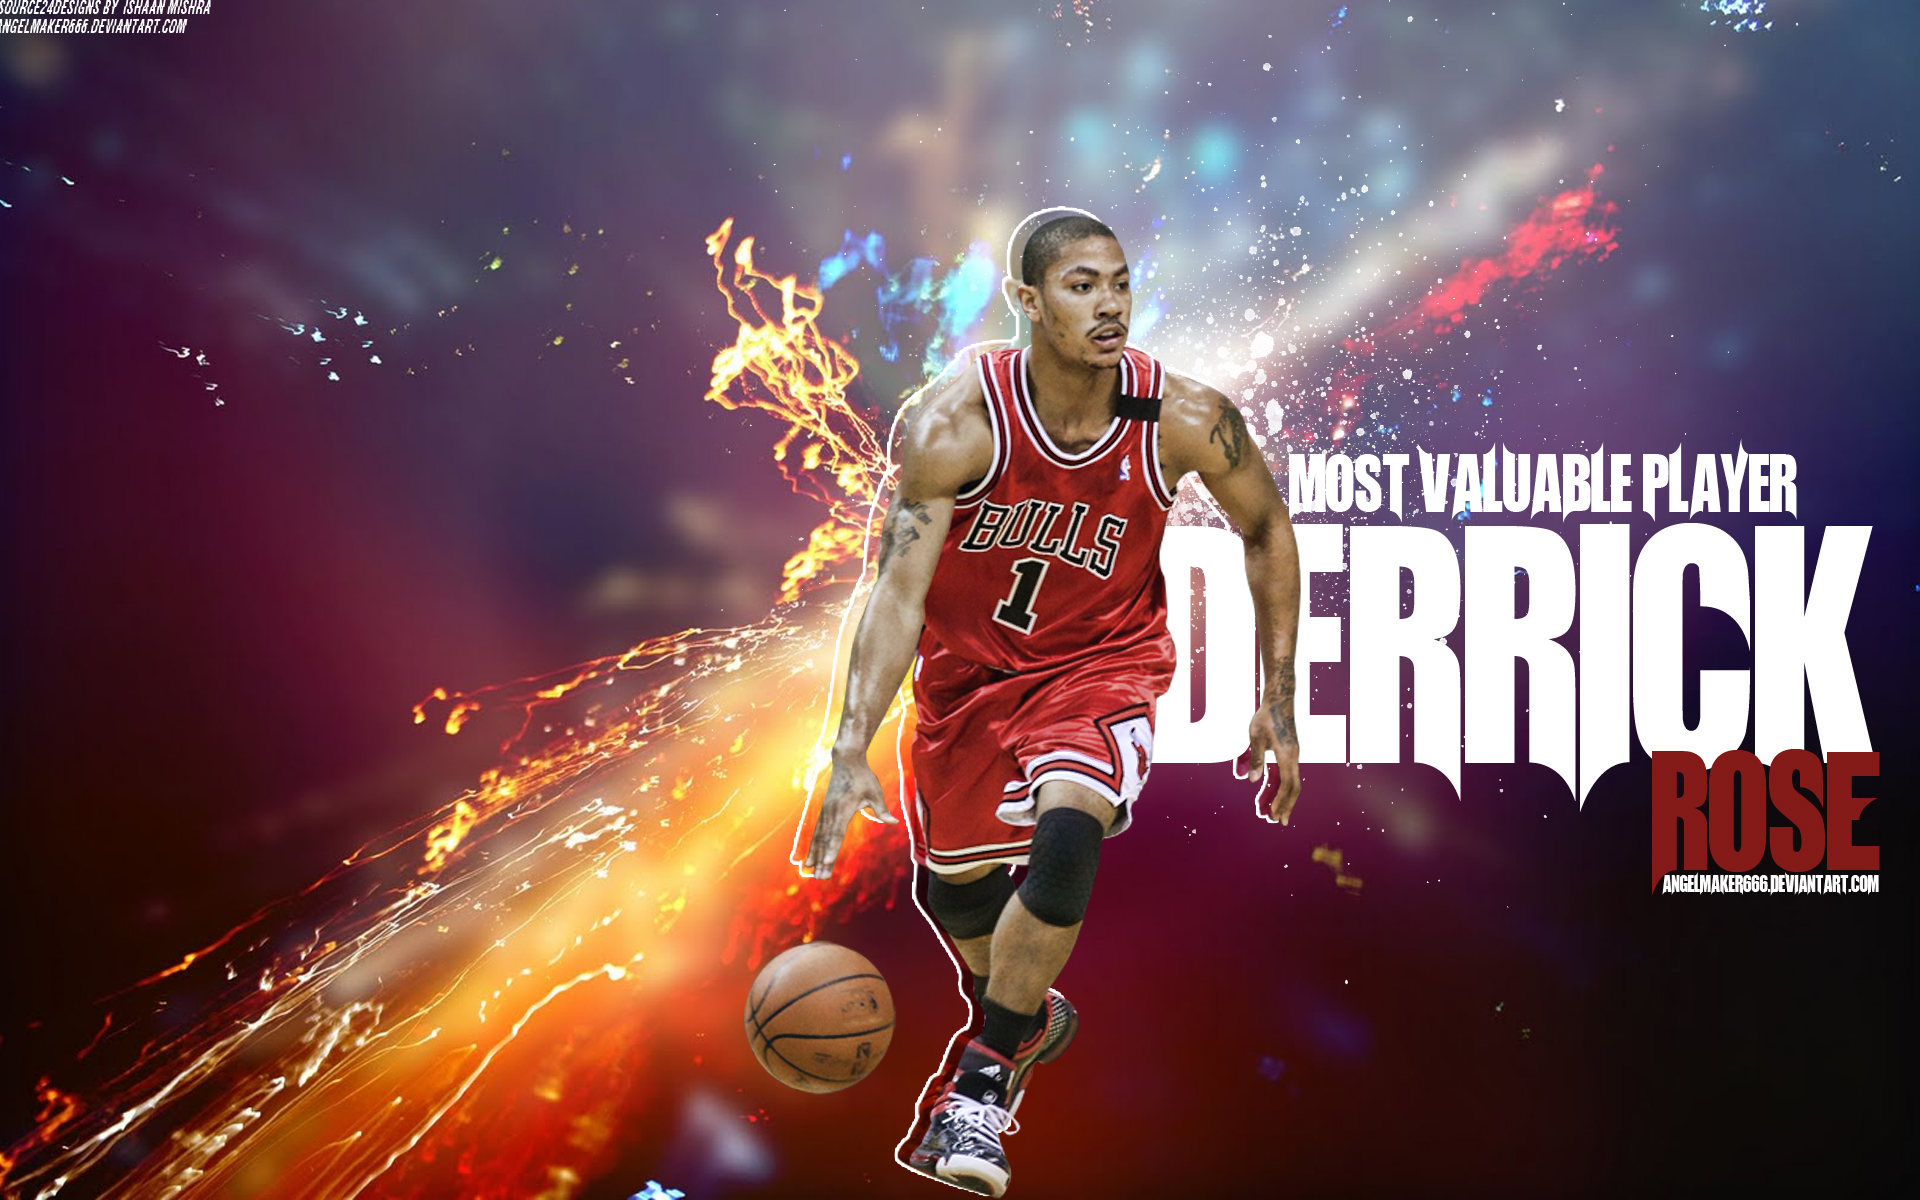 Derrick Rose Wallpaper 2014 1920x1200